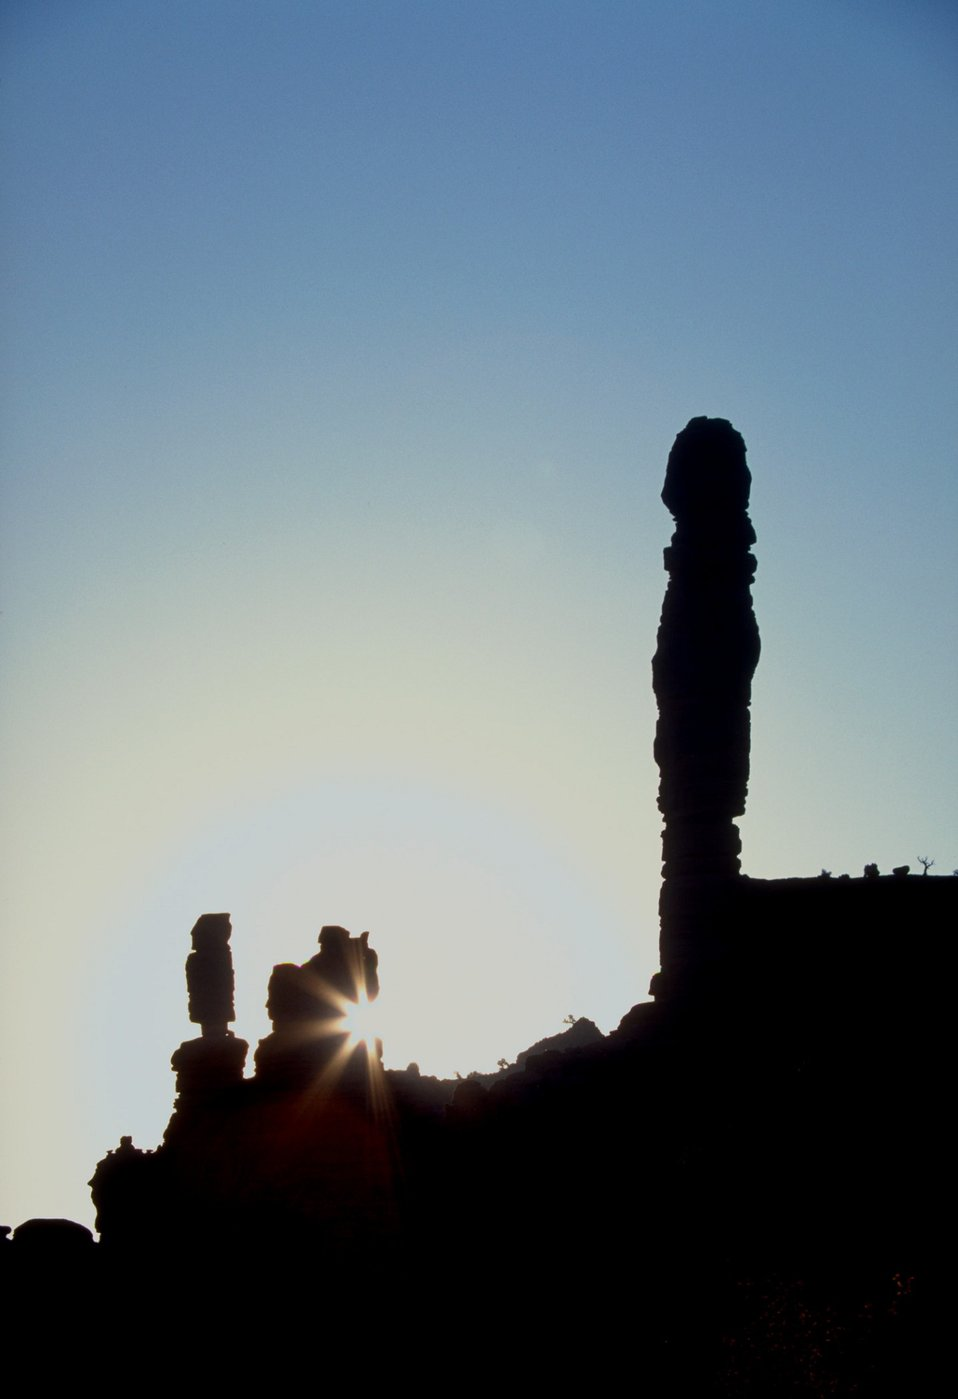 Spires silhouetted in Onion Creek area near Moab, Utah.